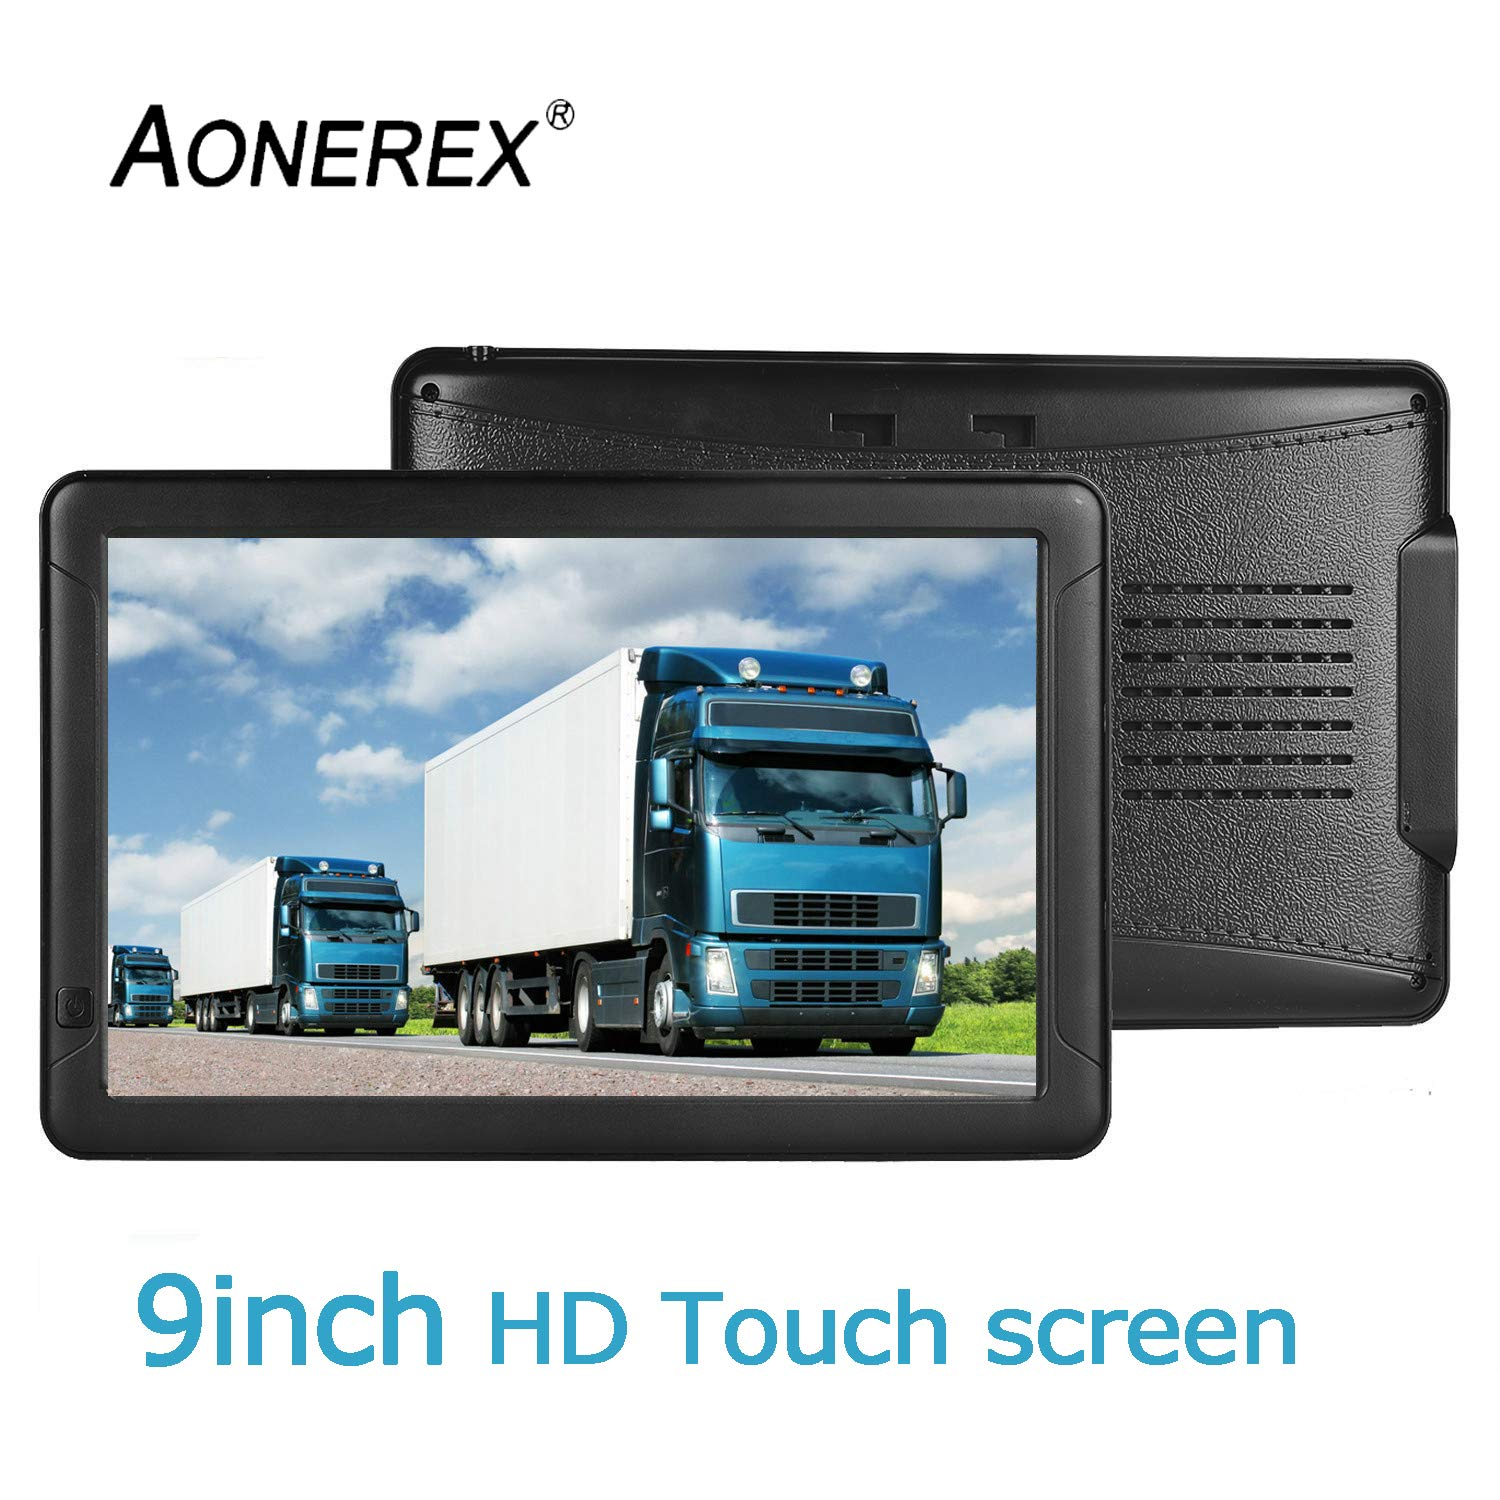 9inch HD AONEREX GPS Navigation for car/Truck Capacitive Big Touchscreen, [2019 Upgraded Version] Voice Trun-by-Turn Route Guidance, Speed Limit ...